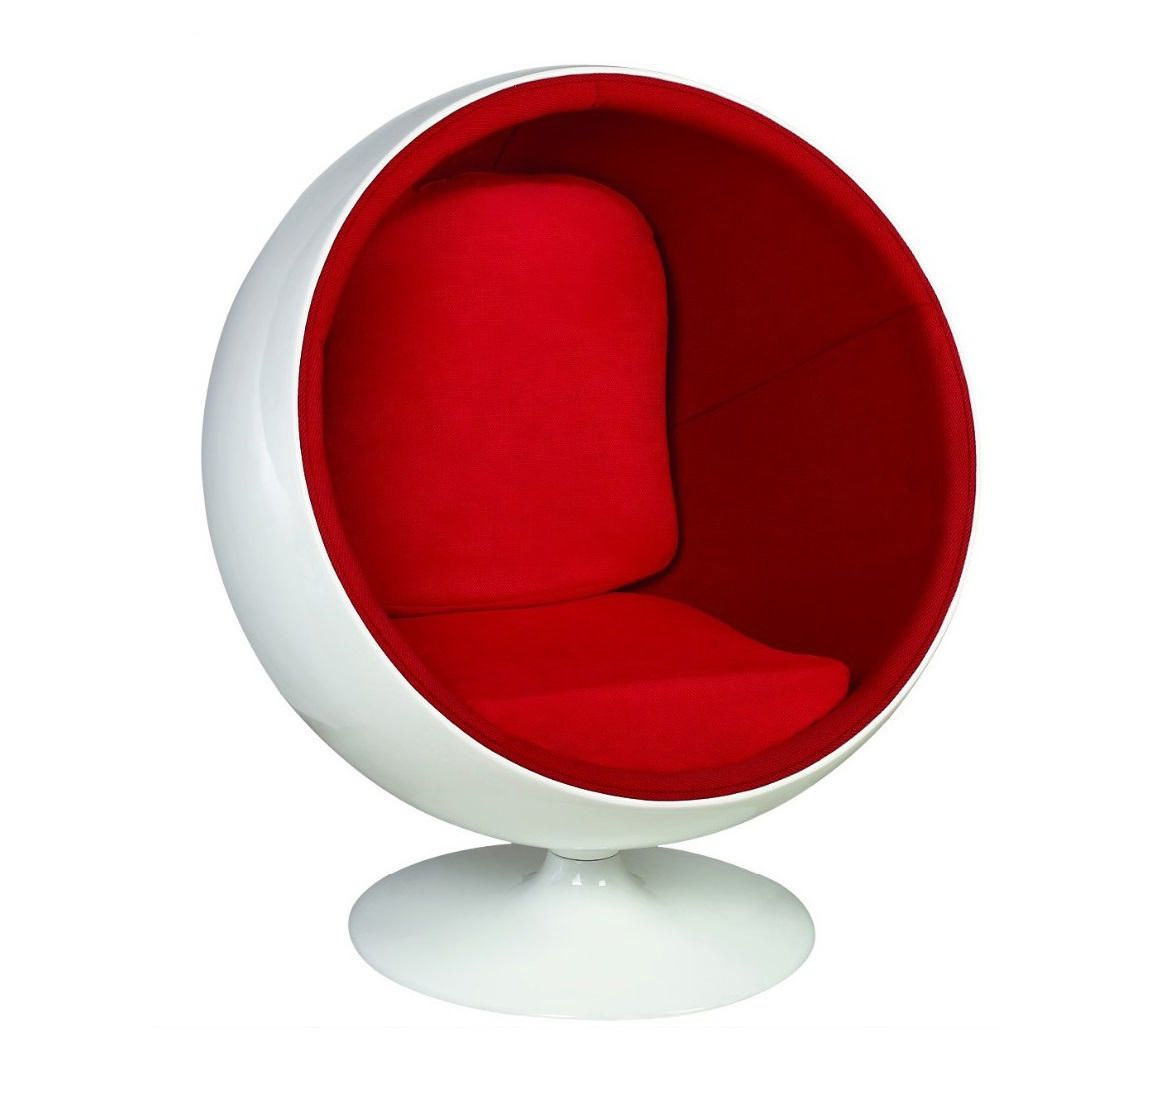 Kids Ball Chair Plata Décor Import Mini Ball Chair For Kids In Red